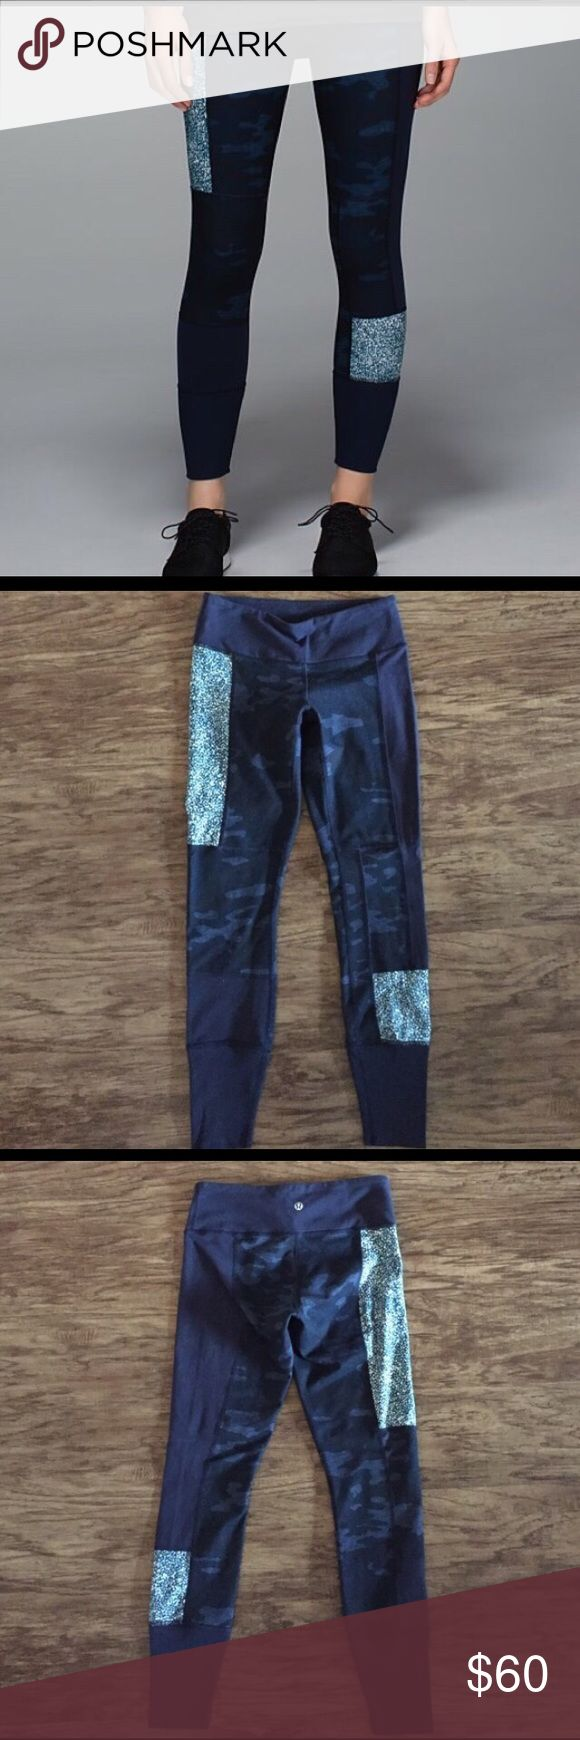 """Lululemon Wonder Under blue camo pant. Size 4. Lululemon Wonder Under blue camo pant. Size 4. 7/8"""" length. Overall good used condition. Has been worn and washed many times but has held up well with lots of wear left. lululemon athletica Pants Track Pants & Joggers"""